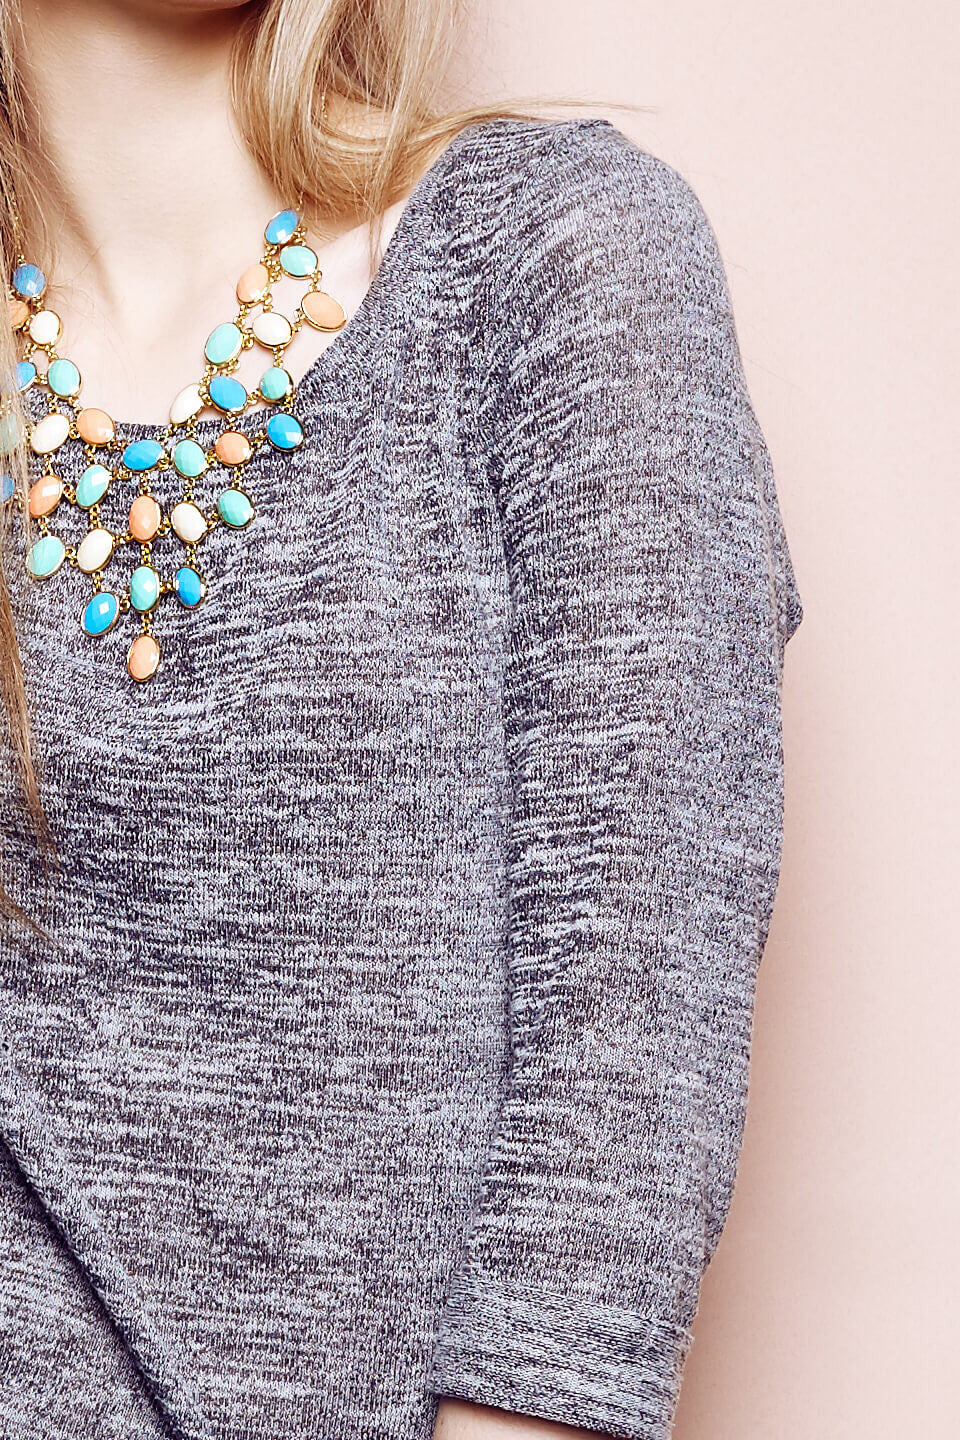 Marble Effect Sweater